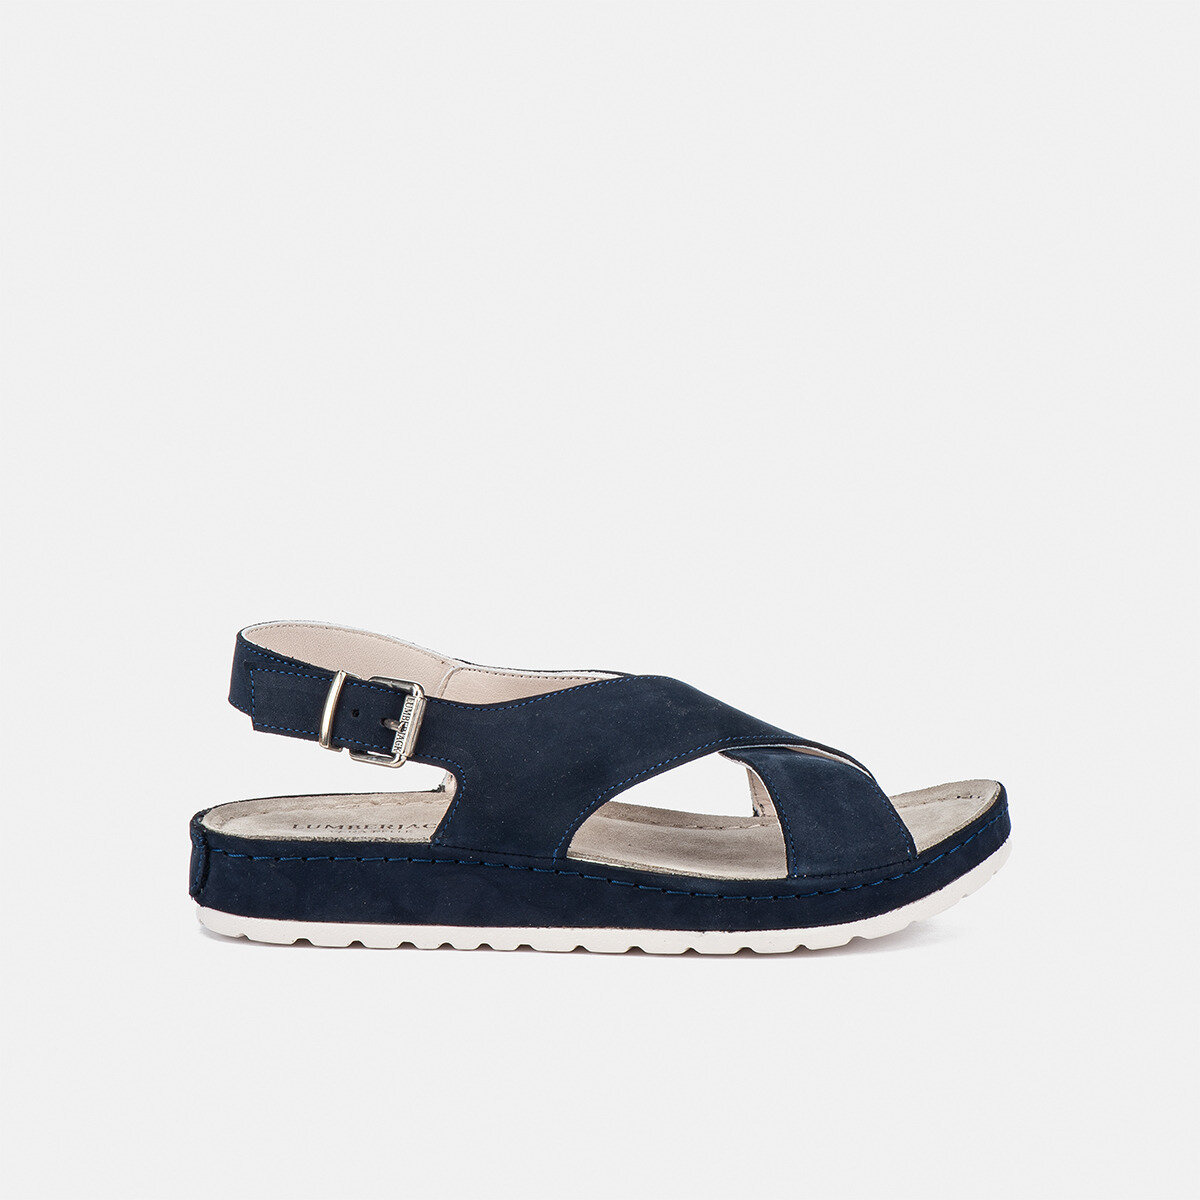 EZA NAVY BLUE Woman Sandals